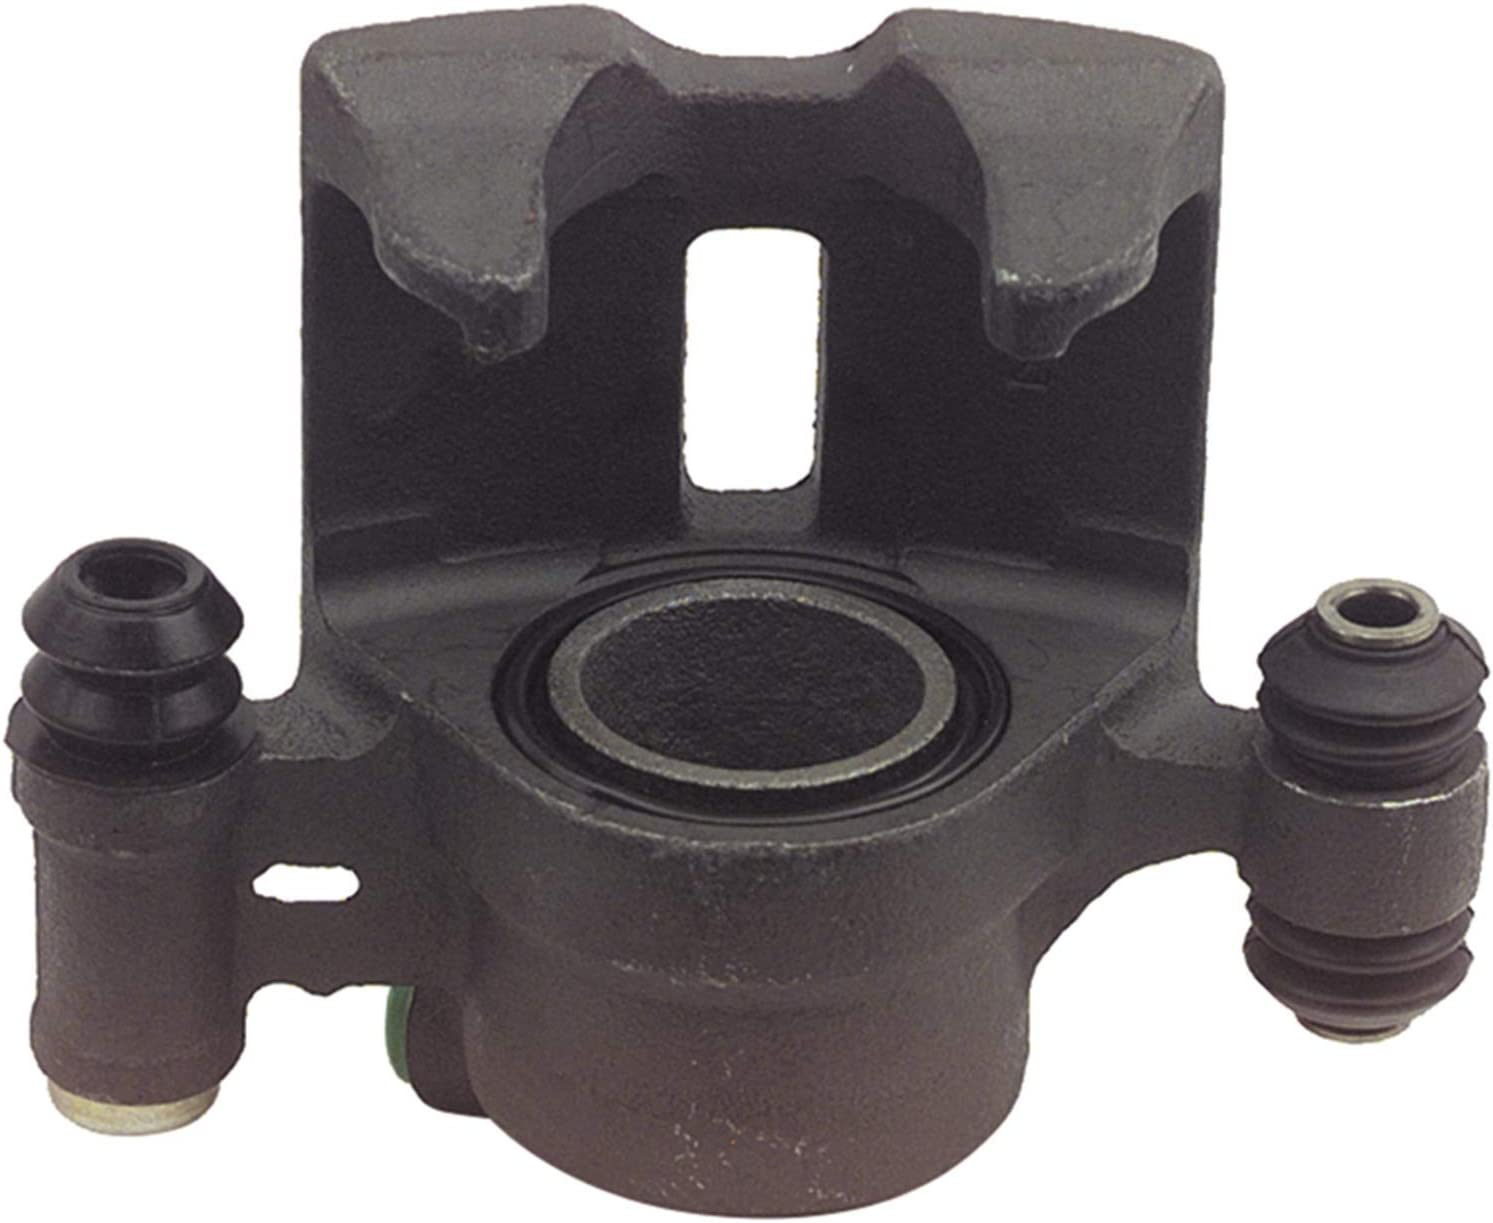 Brake Caliper Unloaded Cardone 19-803 Remanufactured Import Friction Ready